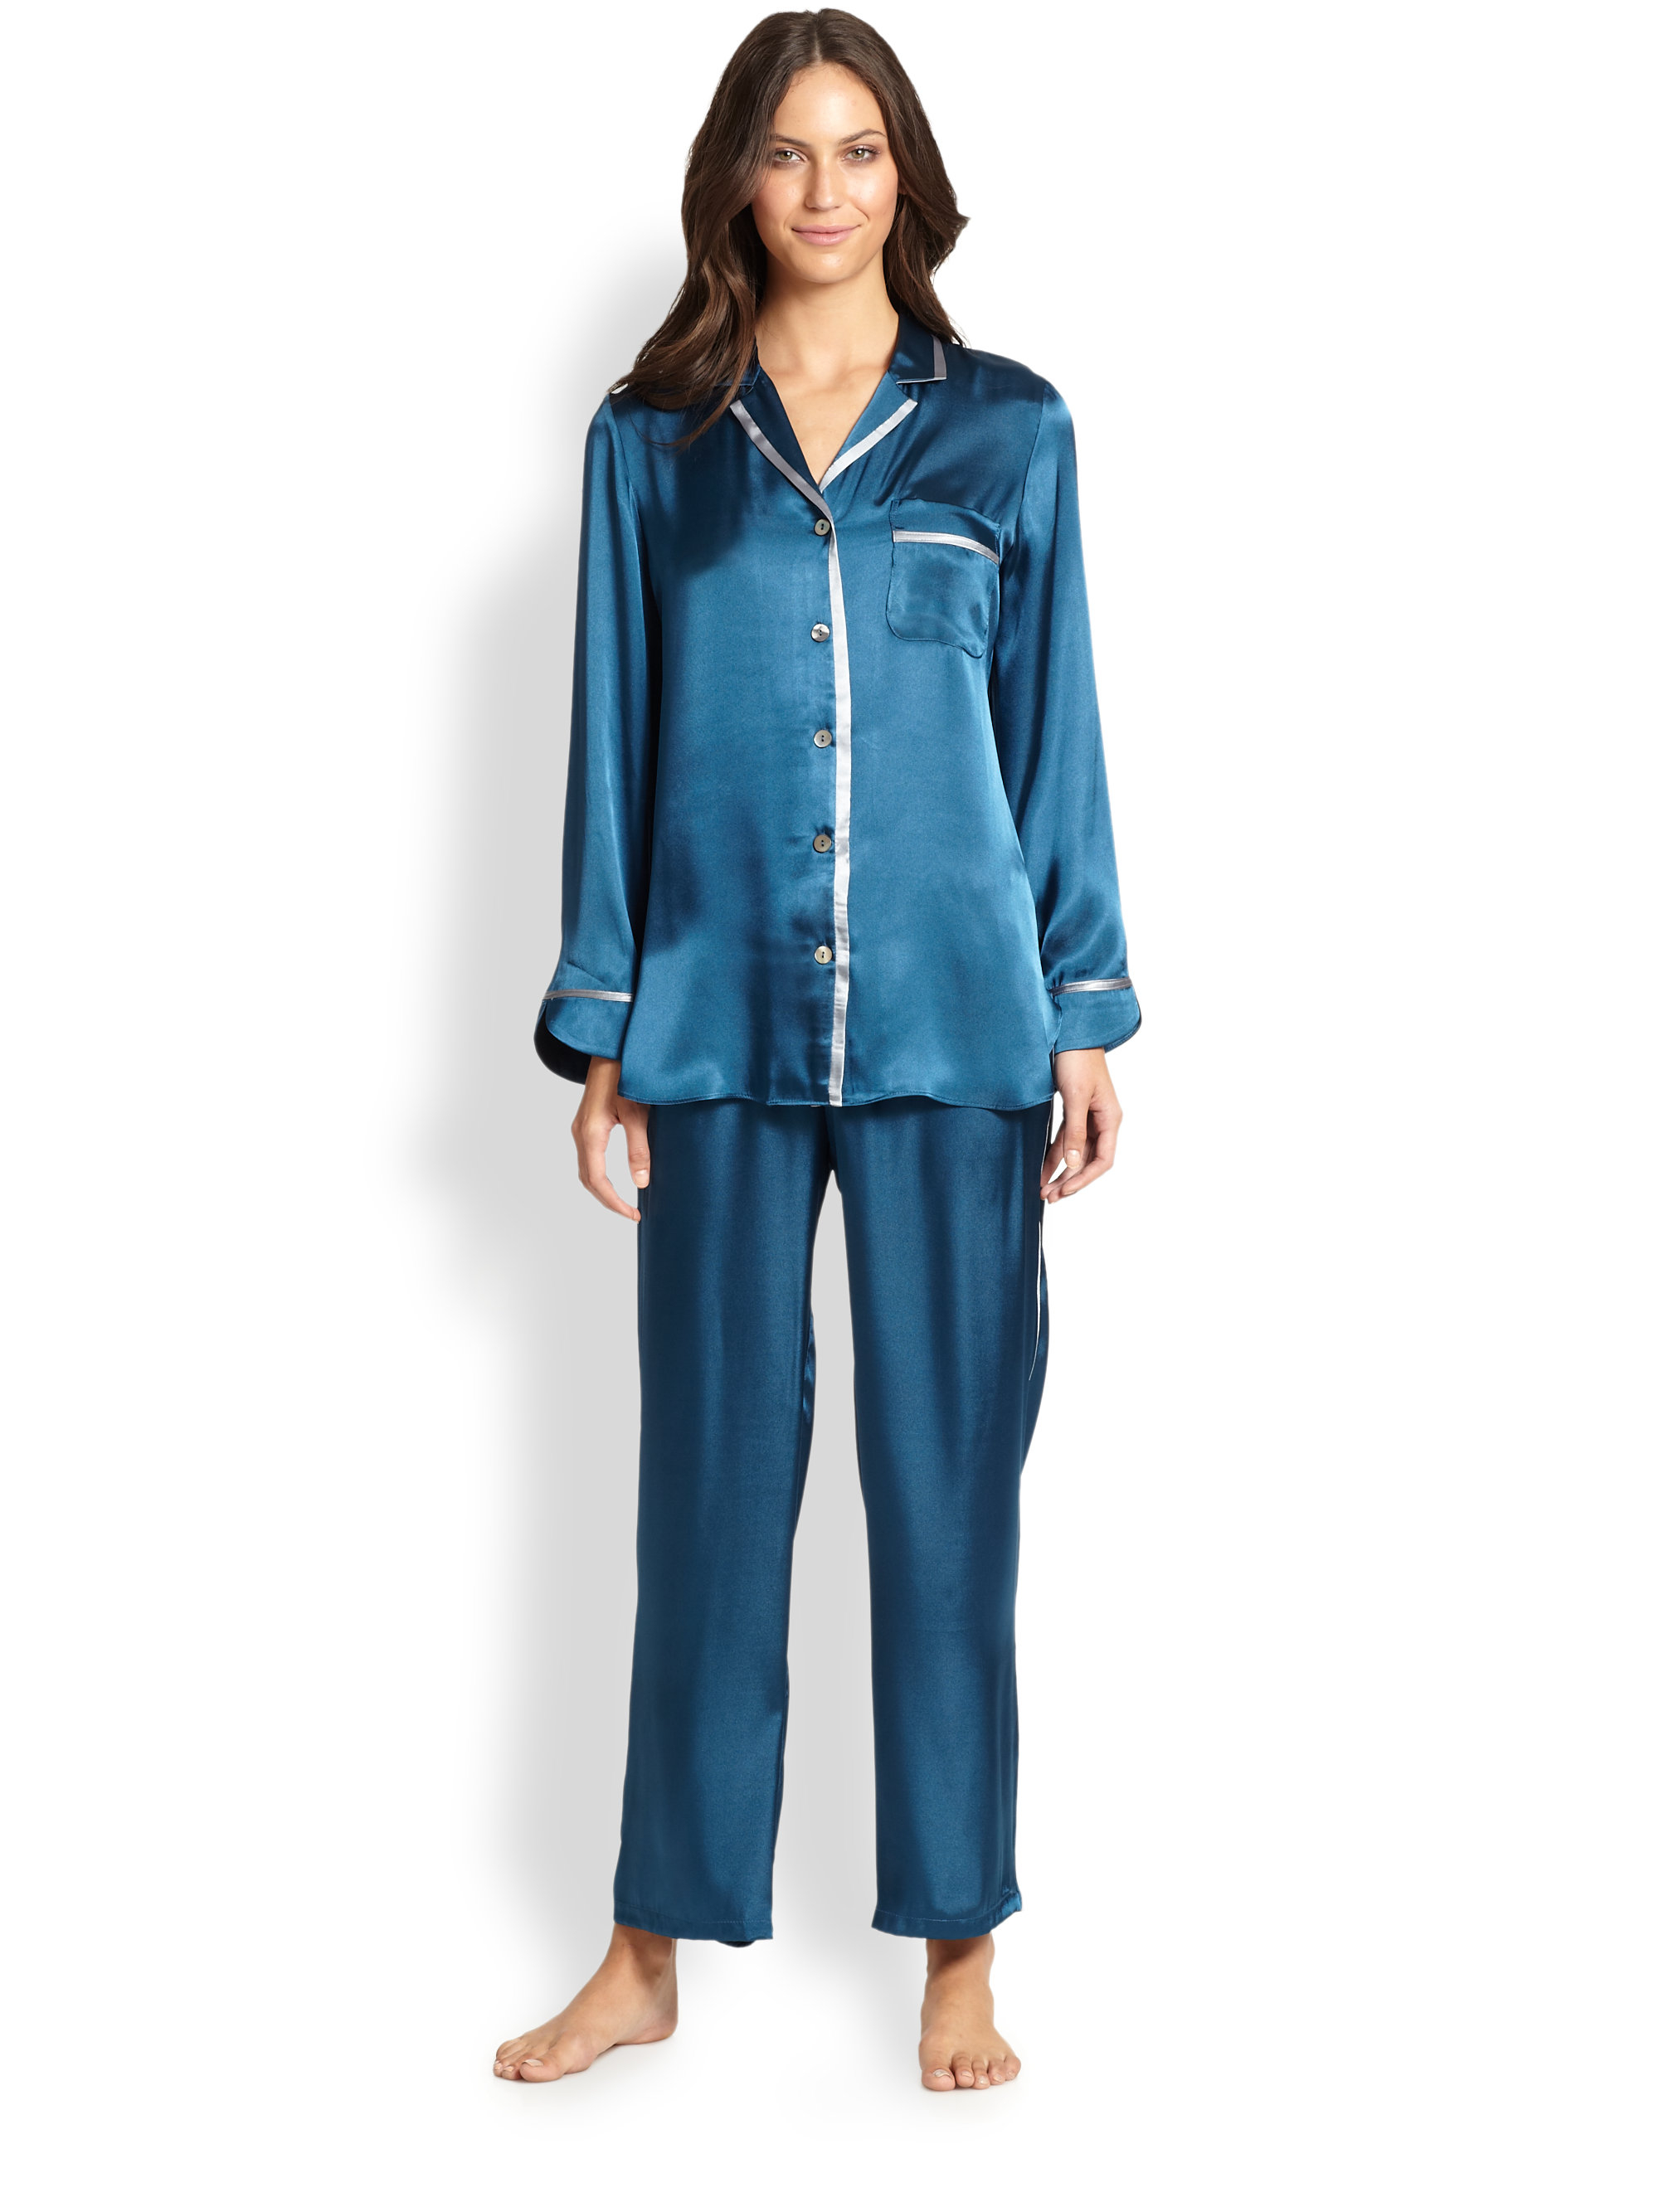 Find pajamas blue satin at ShopStyle. Shop the latest collection of pajamas blue satin from the most popular stores - all in one place.